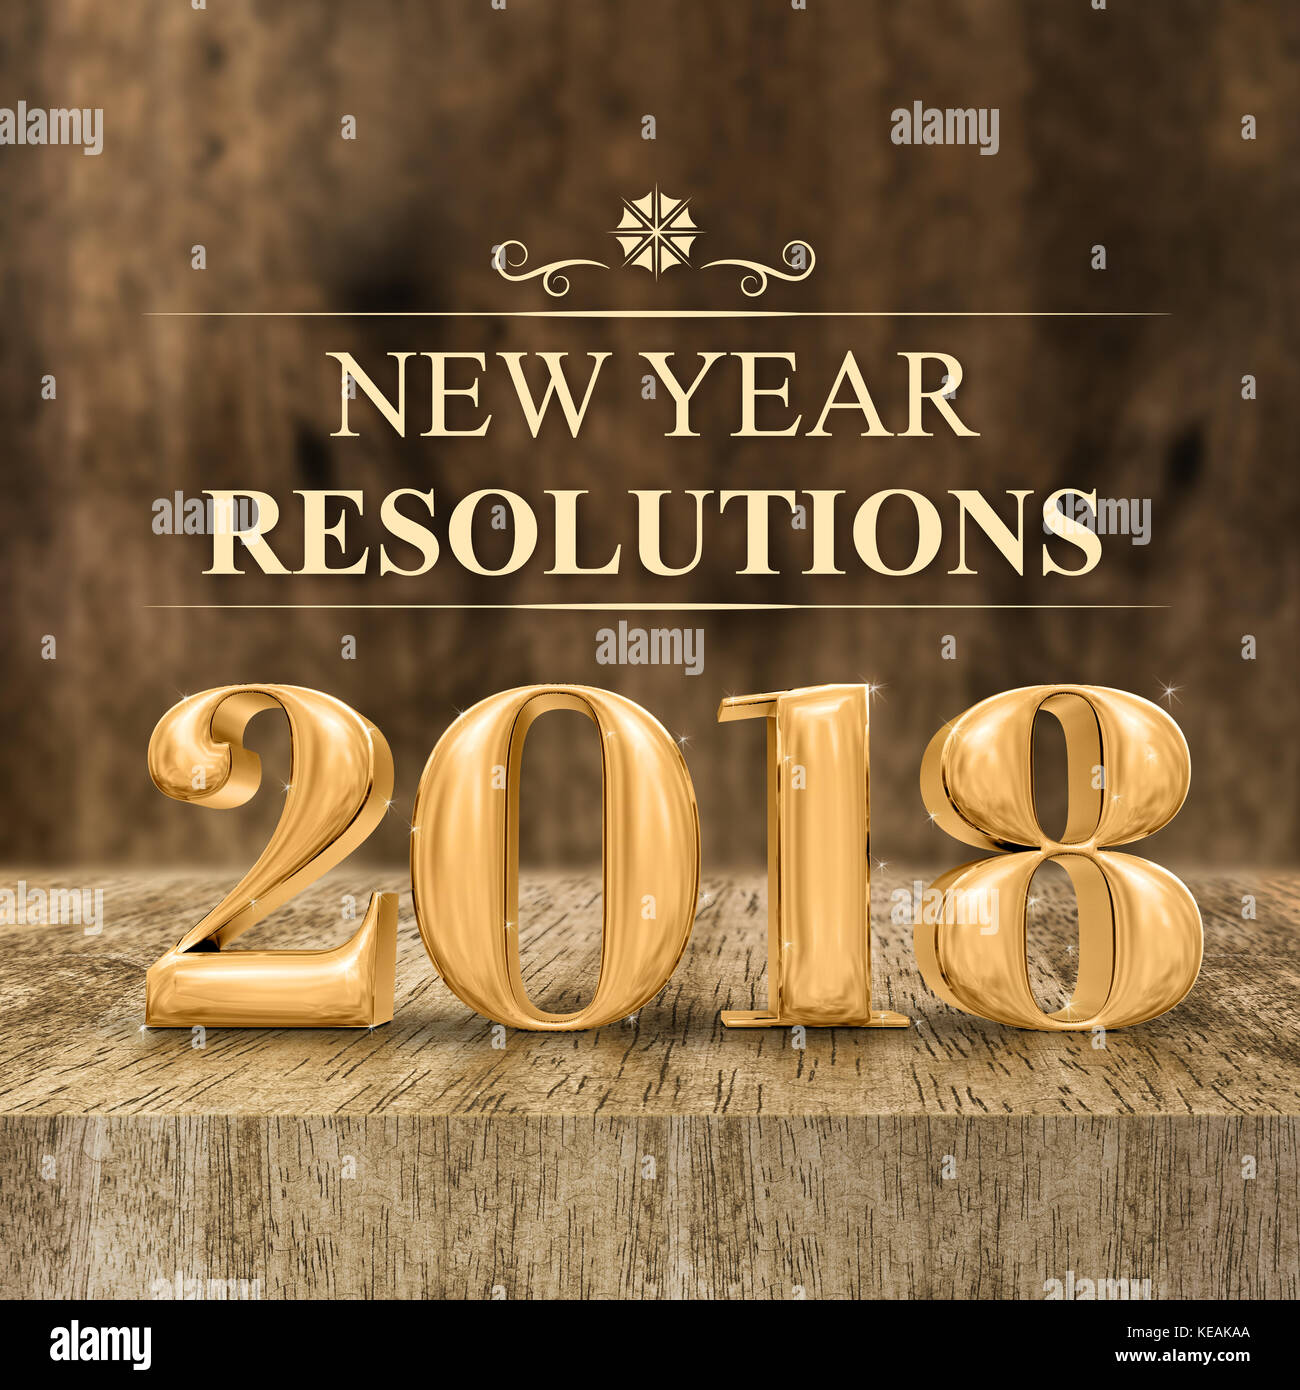 Gold Shiny New Year Resolutions 3d Rendering At Wooden Block Stock Photo Royalty Free